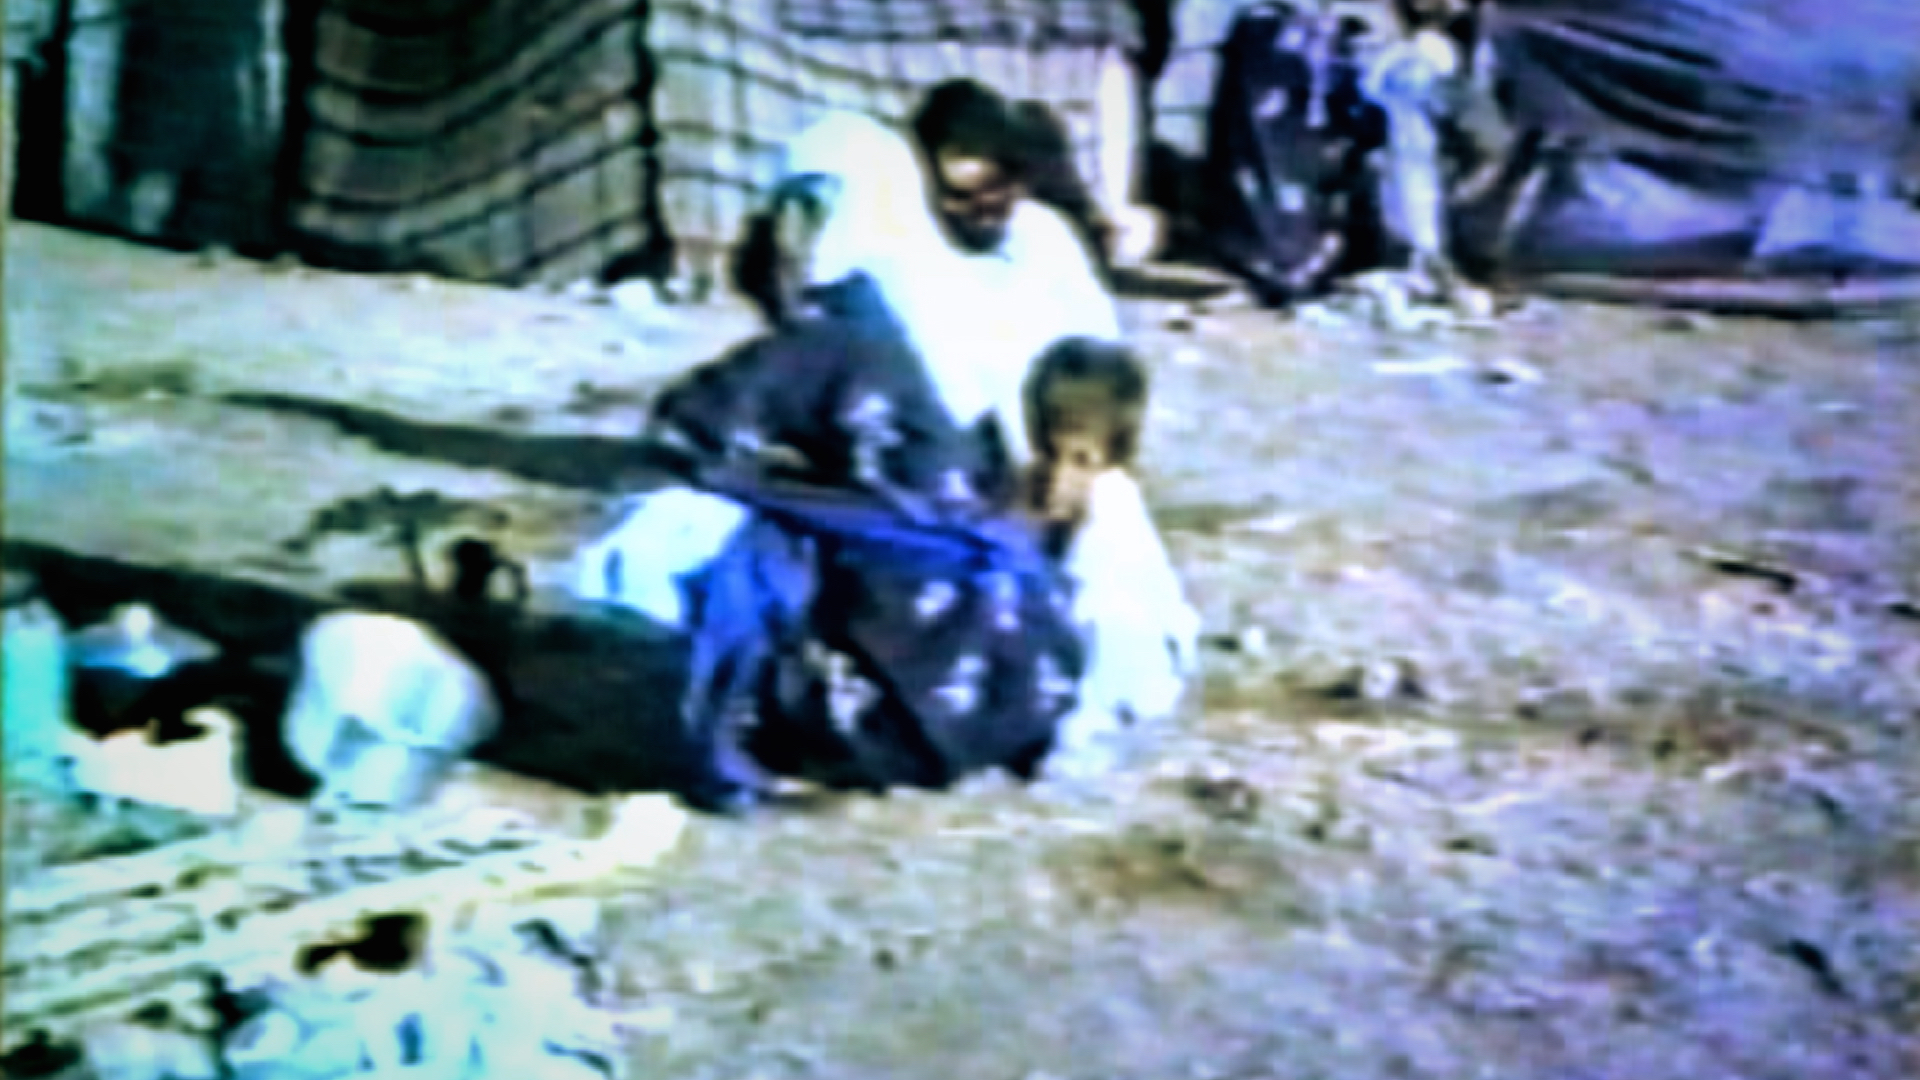 The Anfal survivors in the Baharka internment camp were the mothers, wives and children of Kurdish men executed by the Iraqi authorities. When they arrived they were supported by the local people of Erbil who brought supplies to the camp, but food and water were still in short supply and many of their children died of starvation.